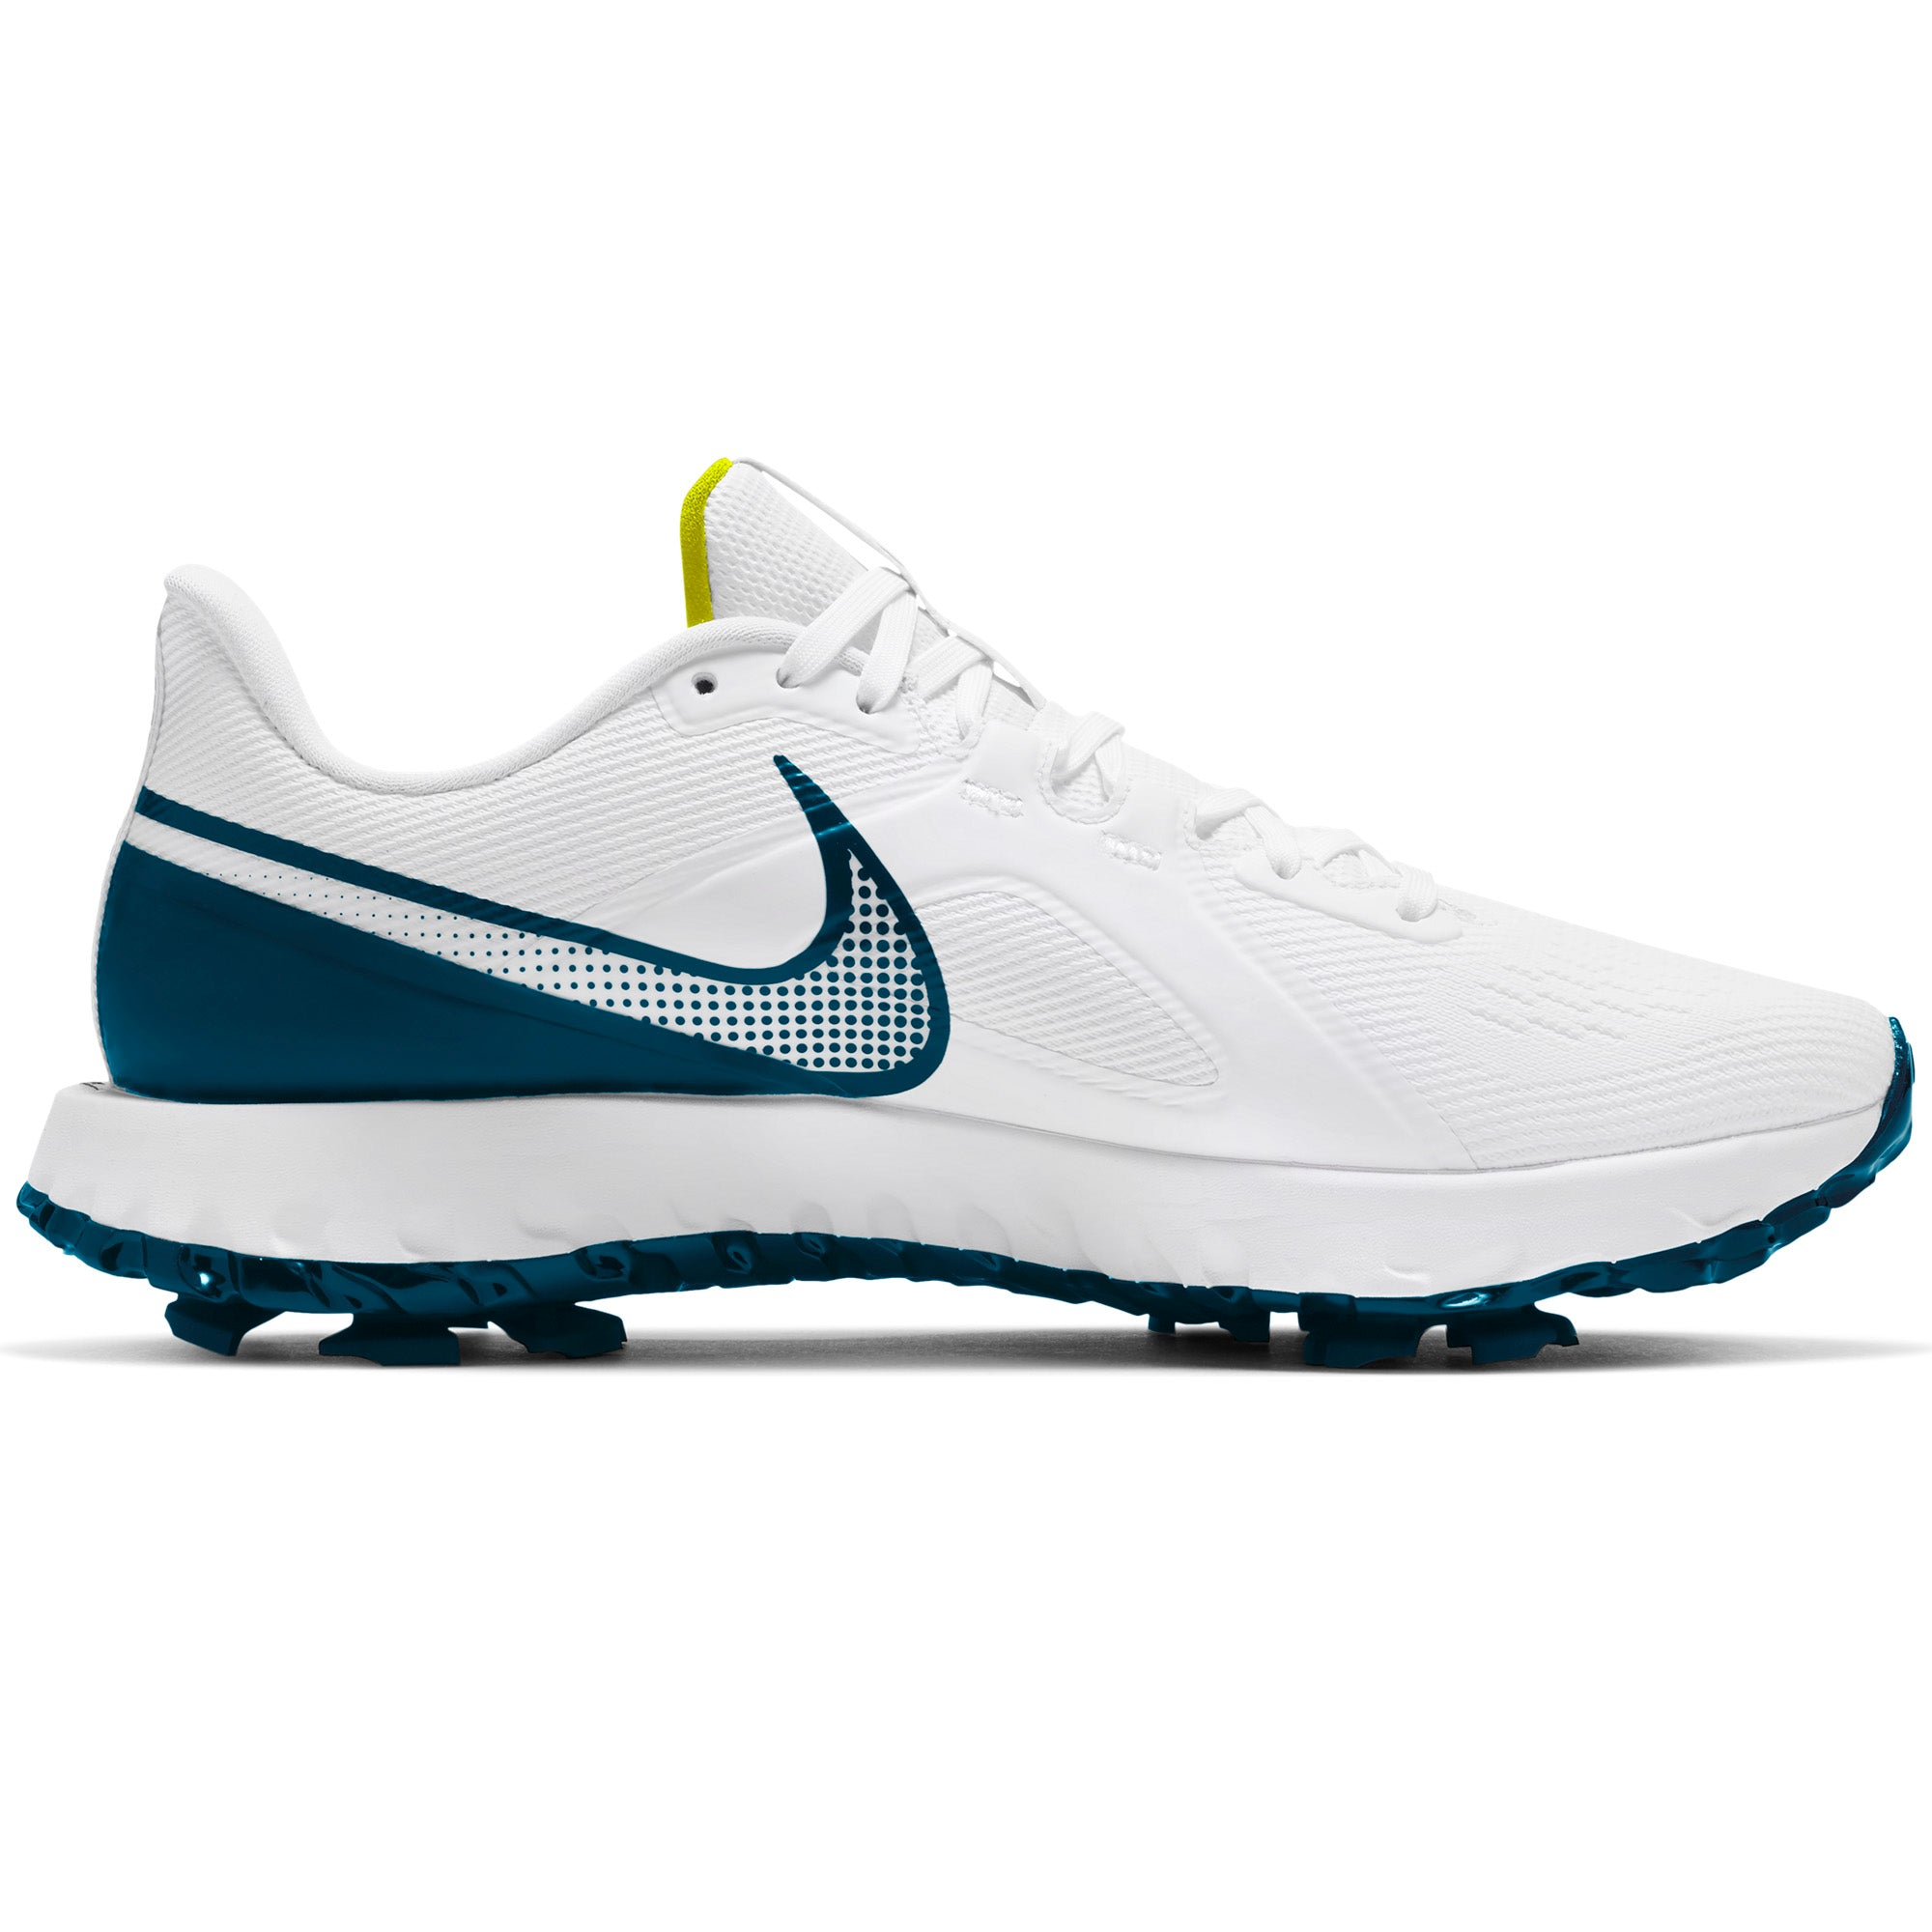 Nike Golf React Infinity Pro Shoes